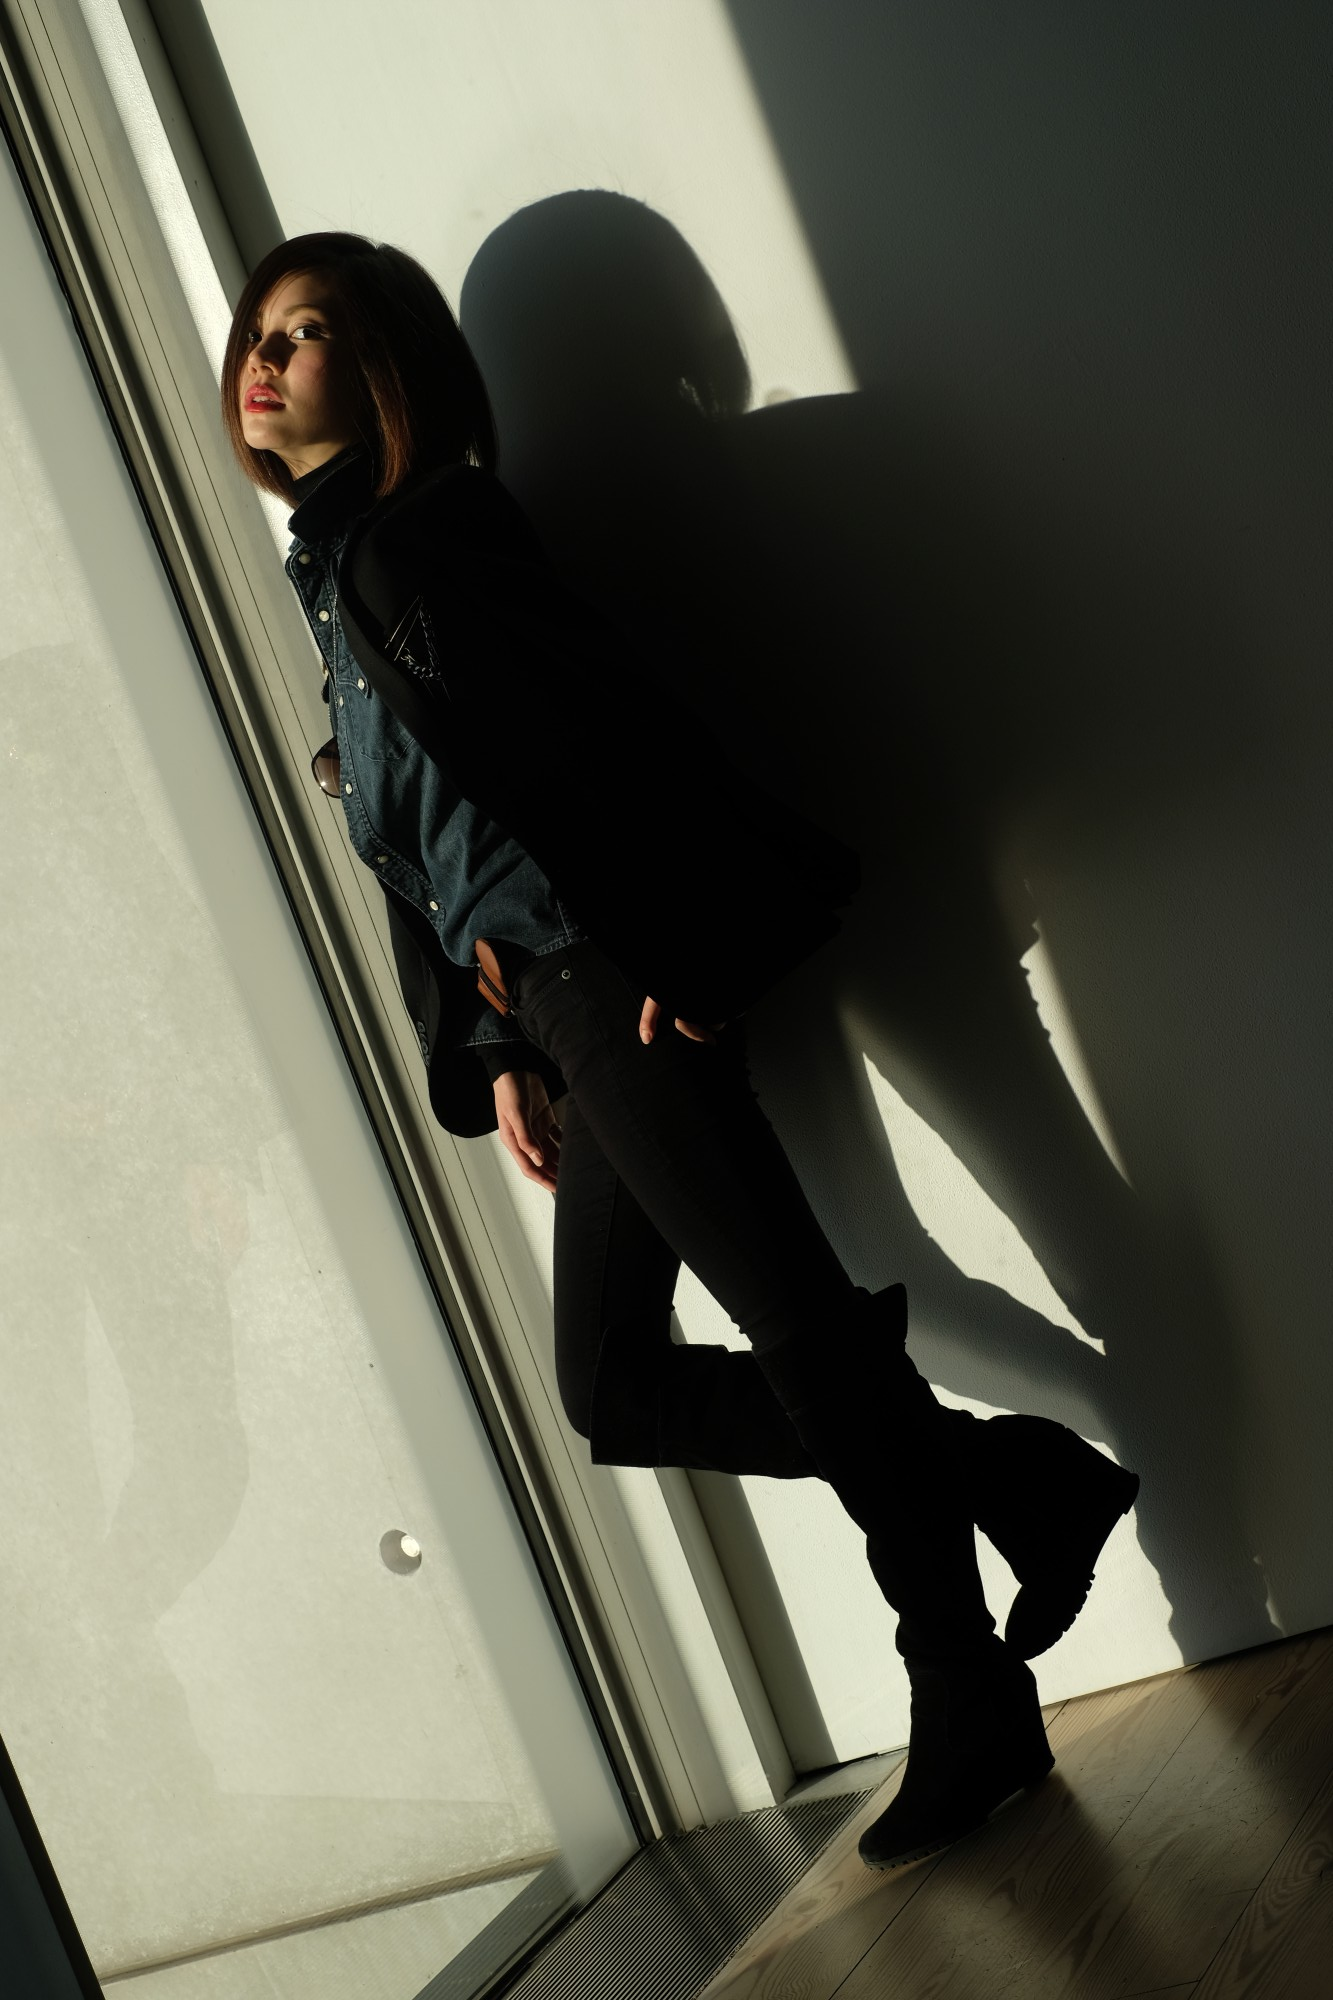 girl standing by window with shadows